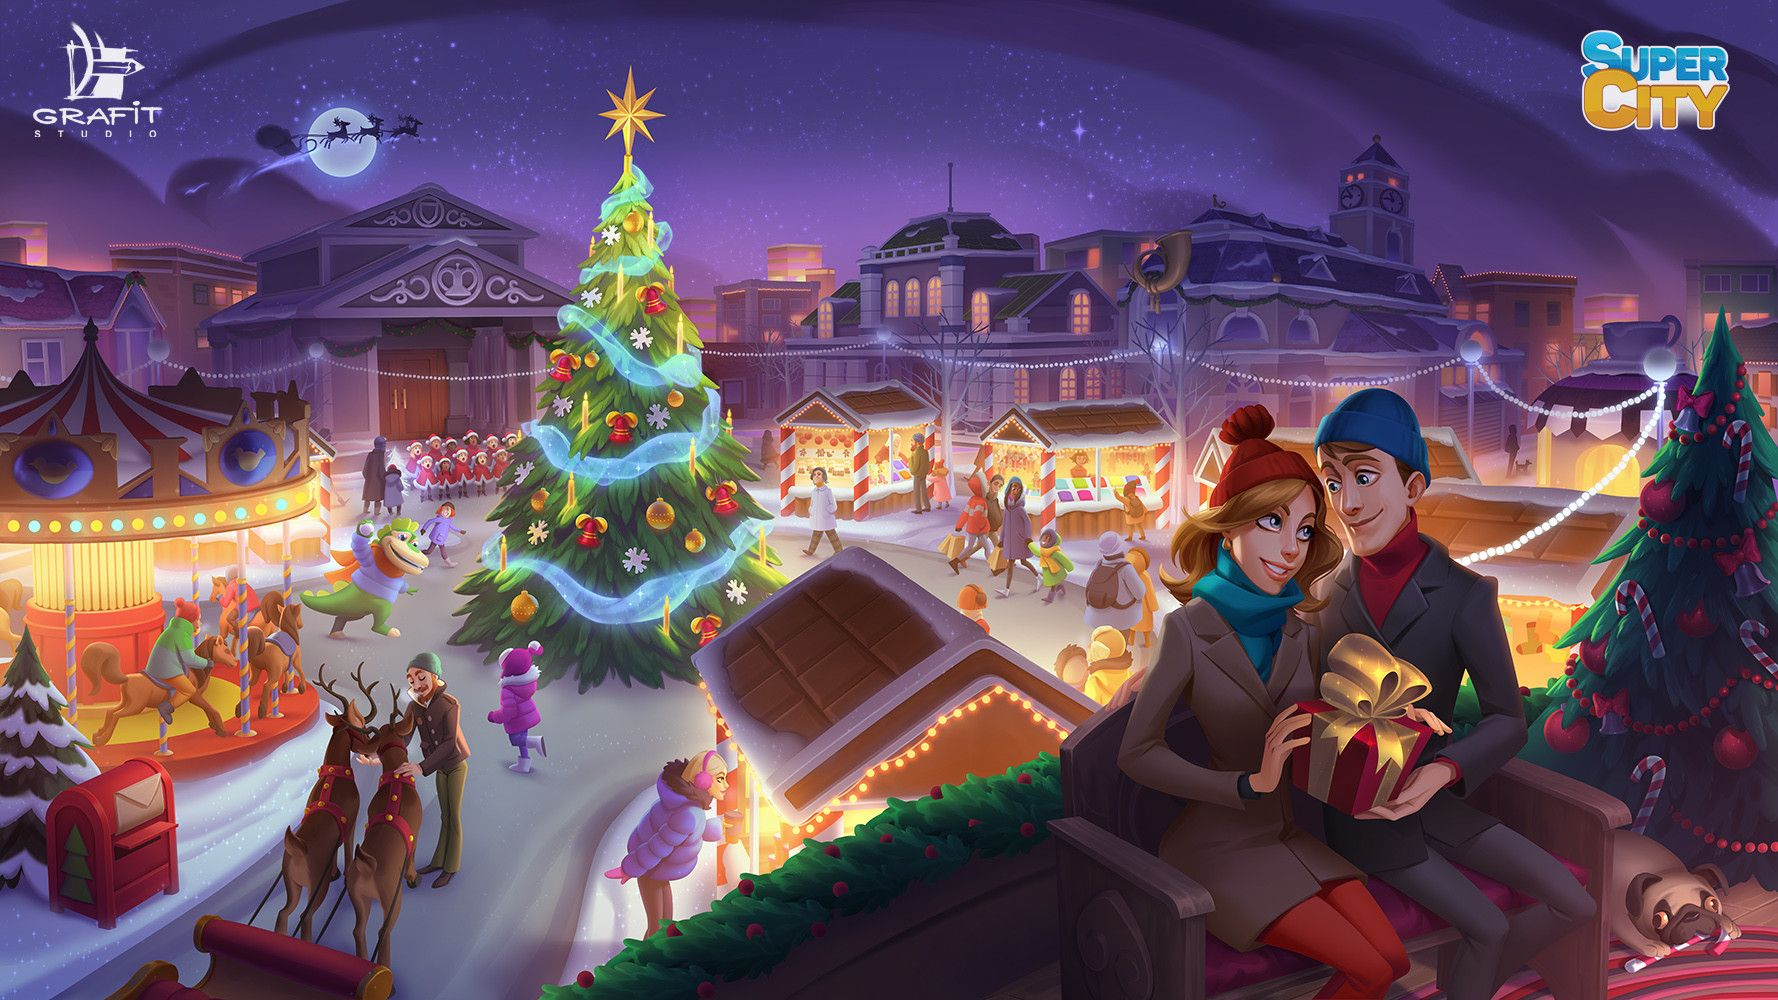 Get A Magical Christmas Tree Supercity 2020 ArtStation   SuperCity Posters, Grafit Studio   Casual art